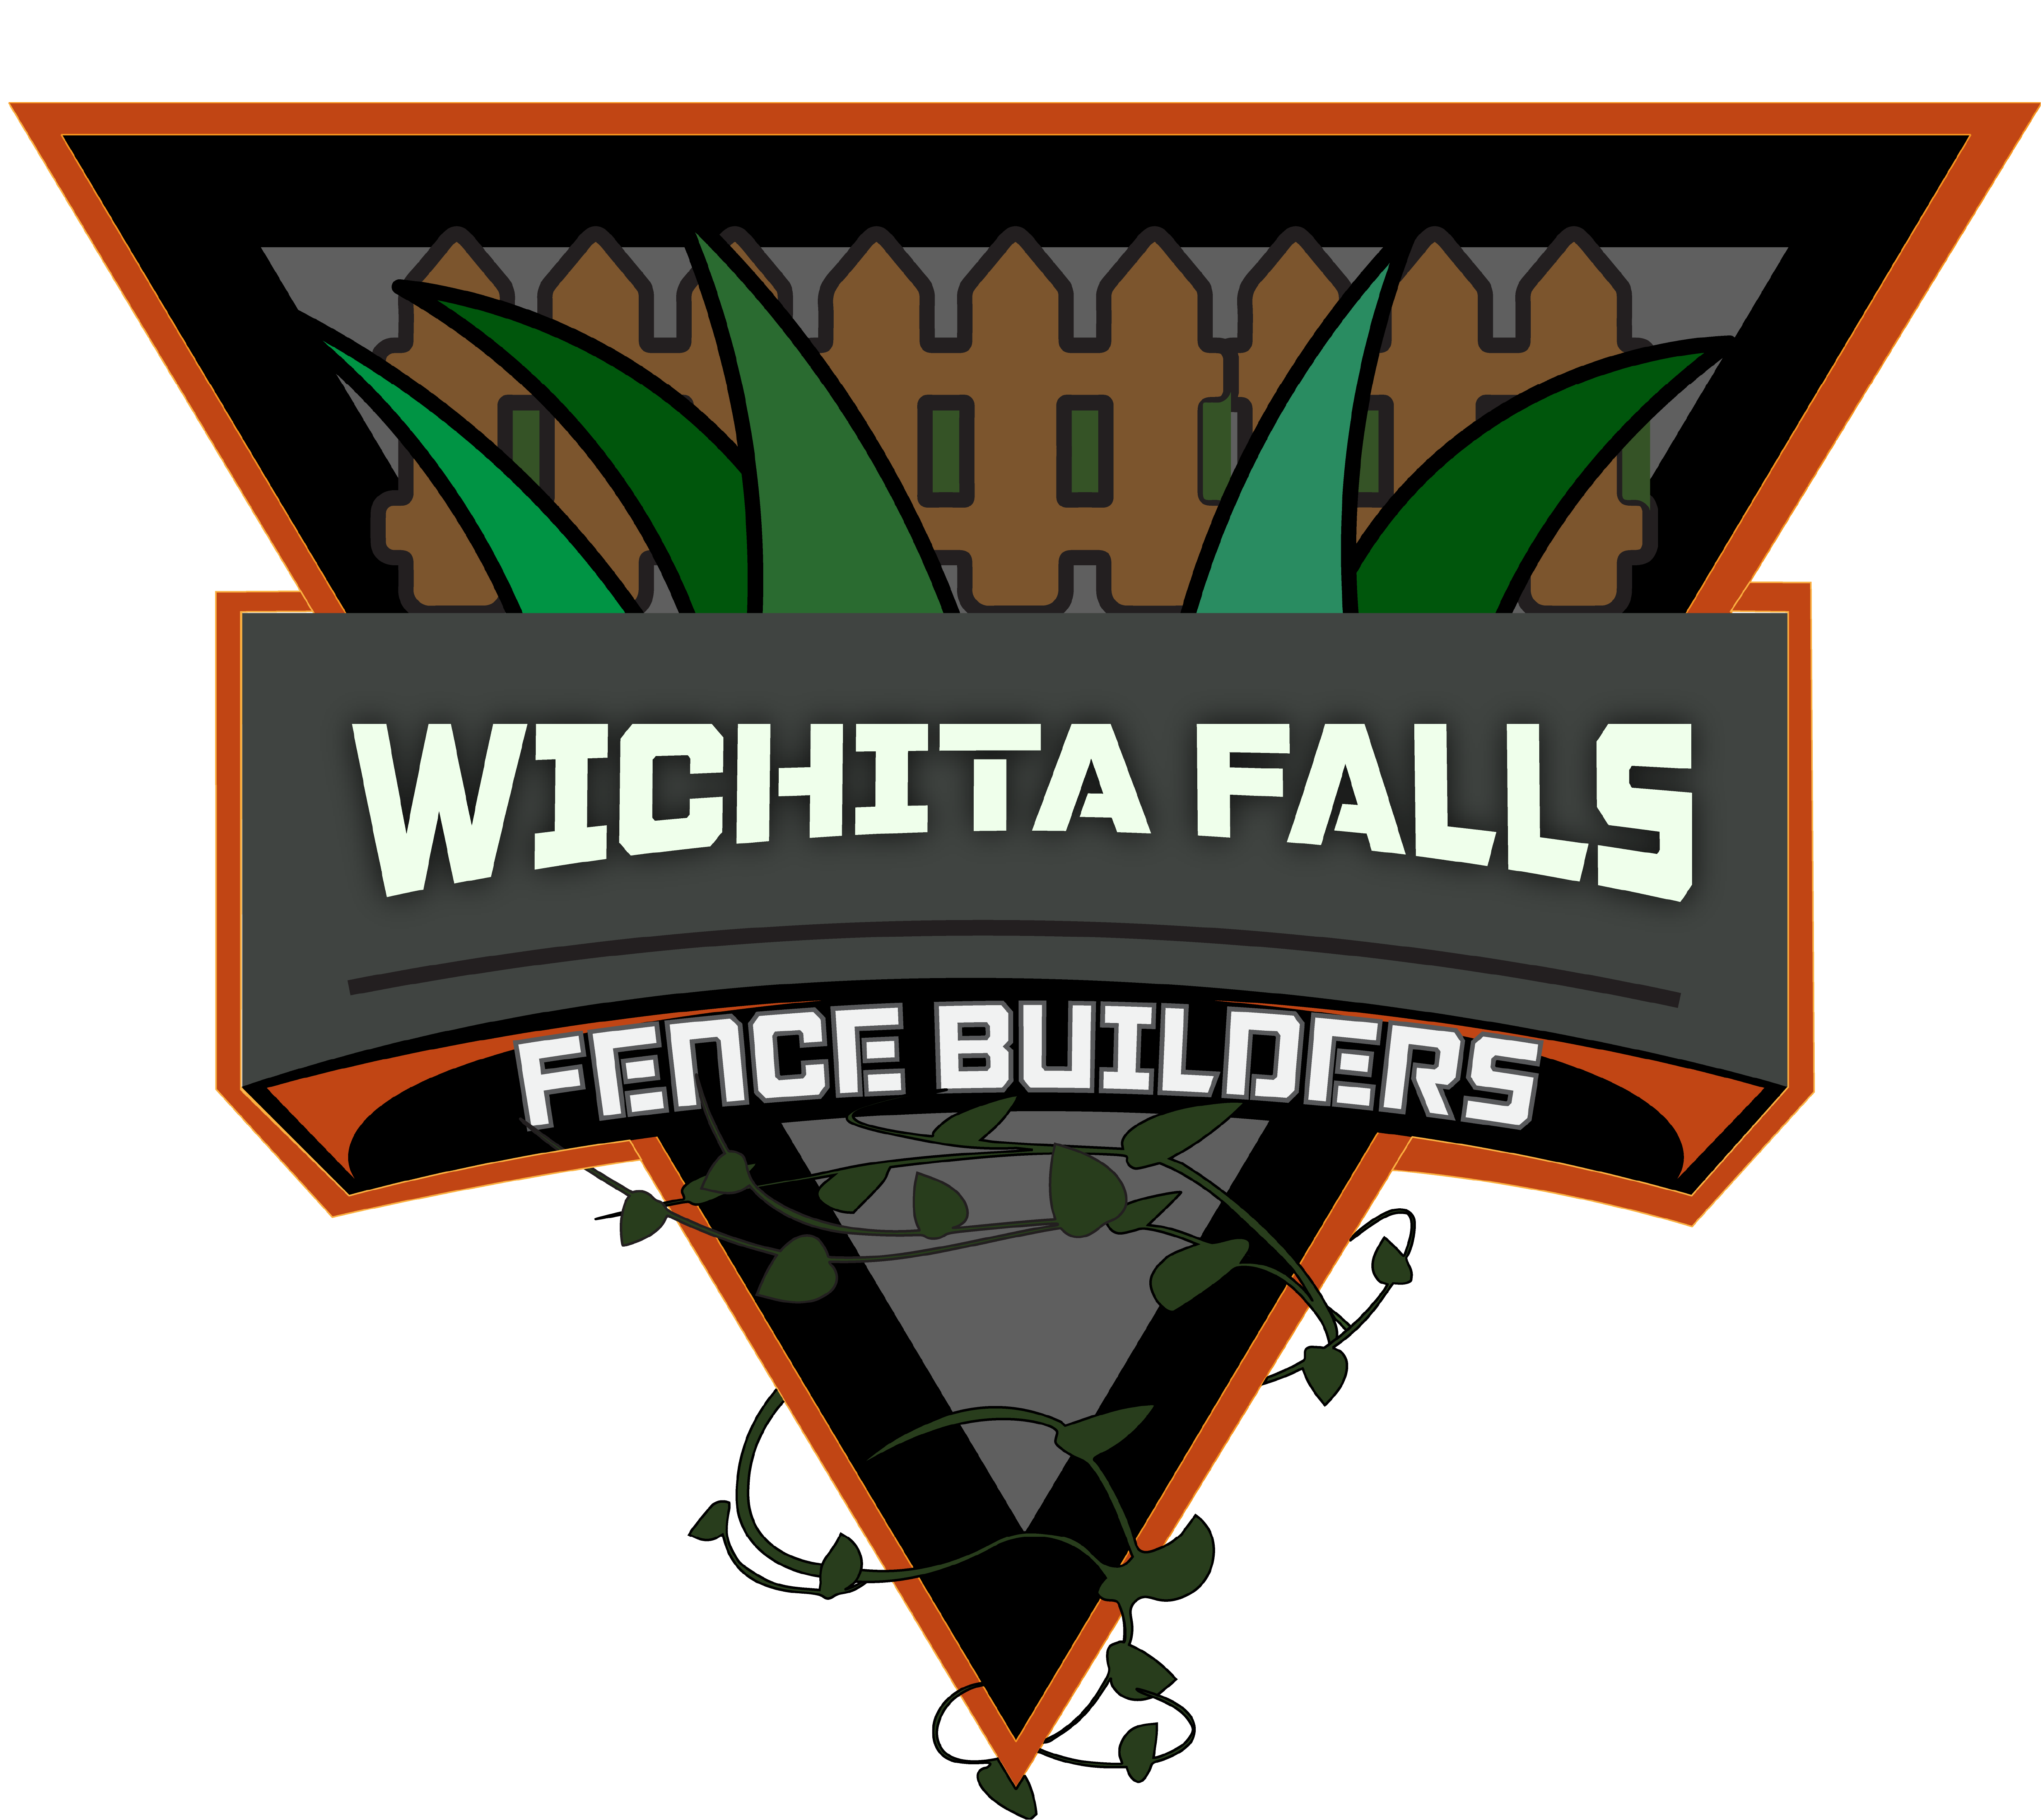 Fence Builders Wichita Falls is a Leading Fencing Contractor in Wichita Falls, TX